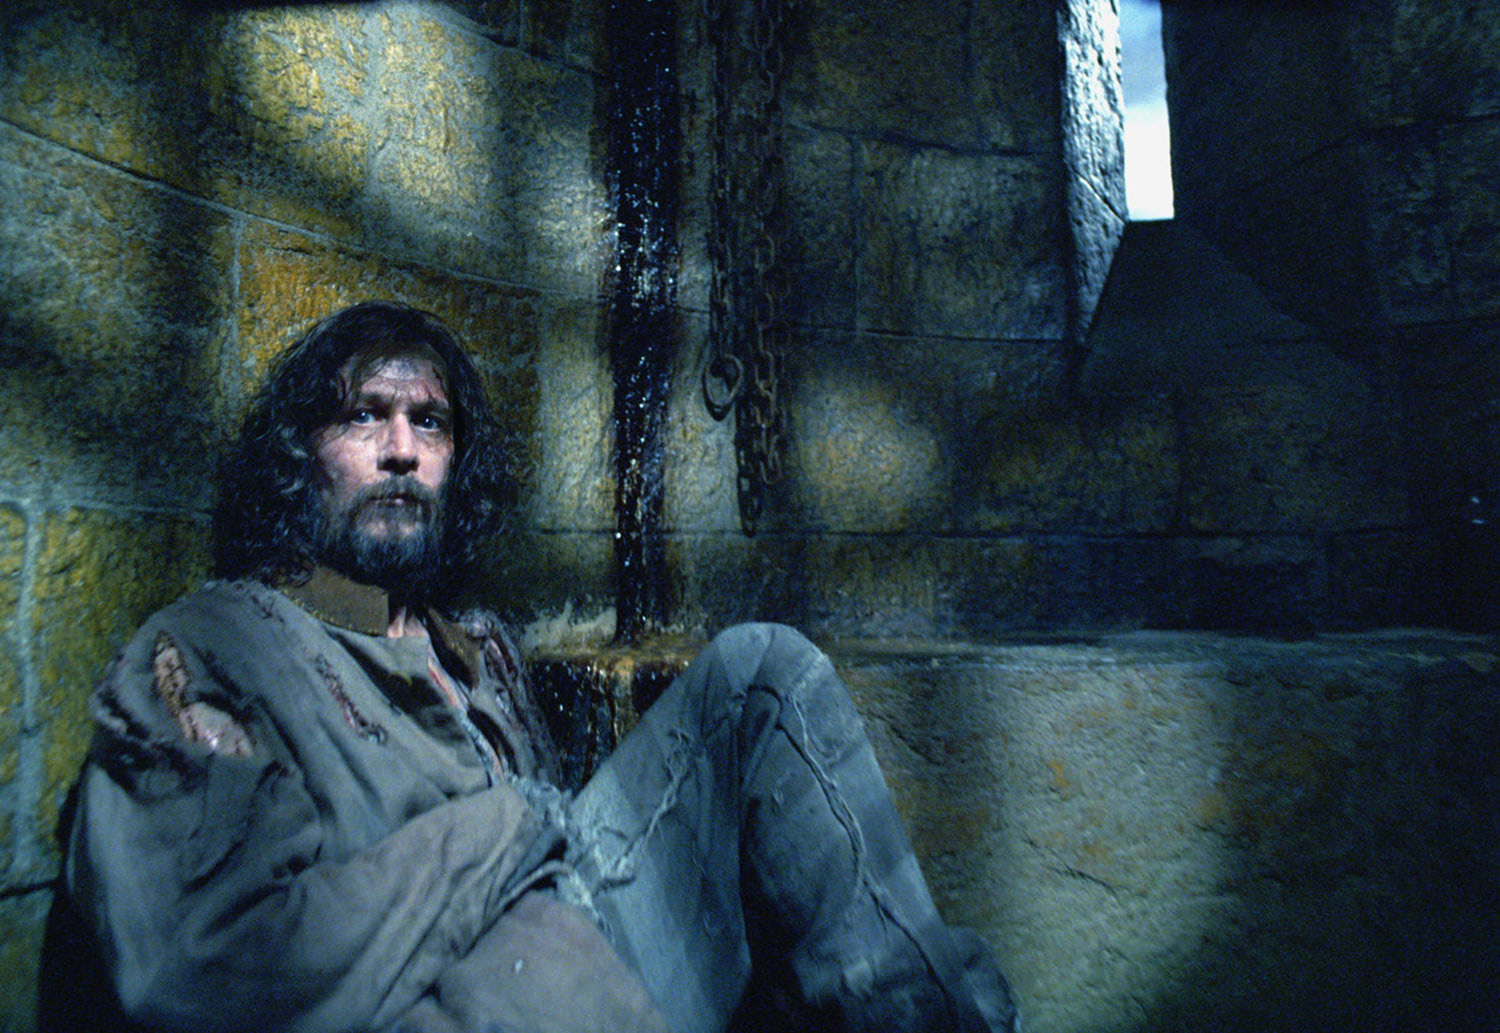 Sirius Black imprisoned